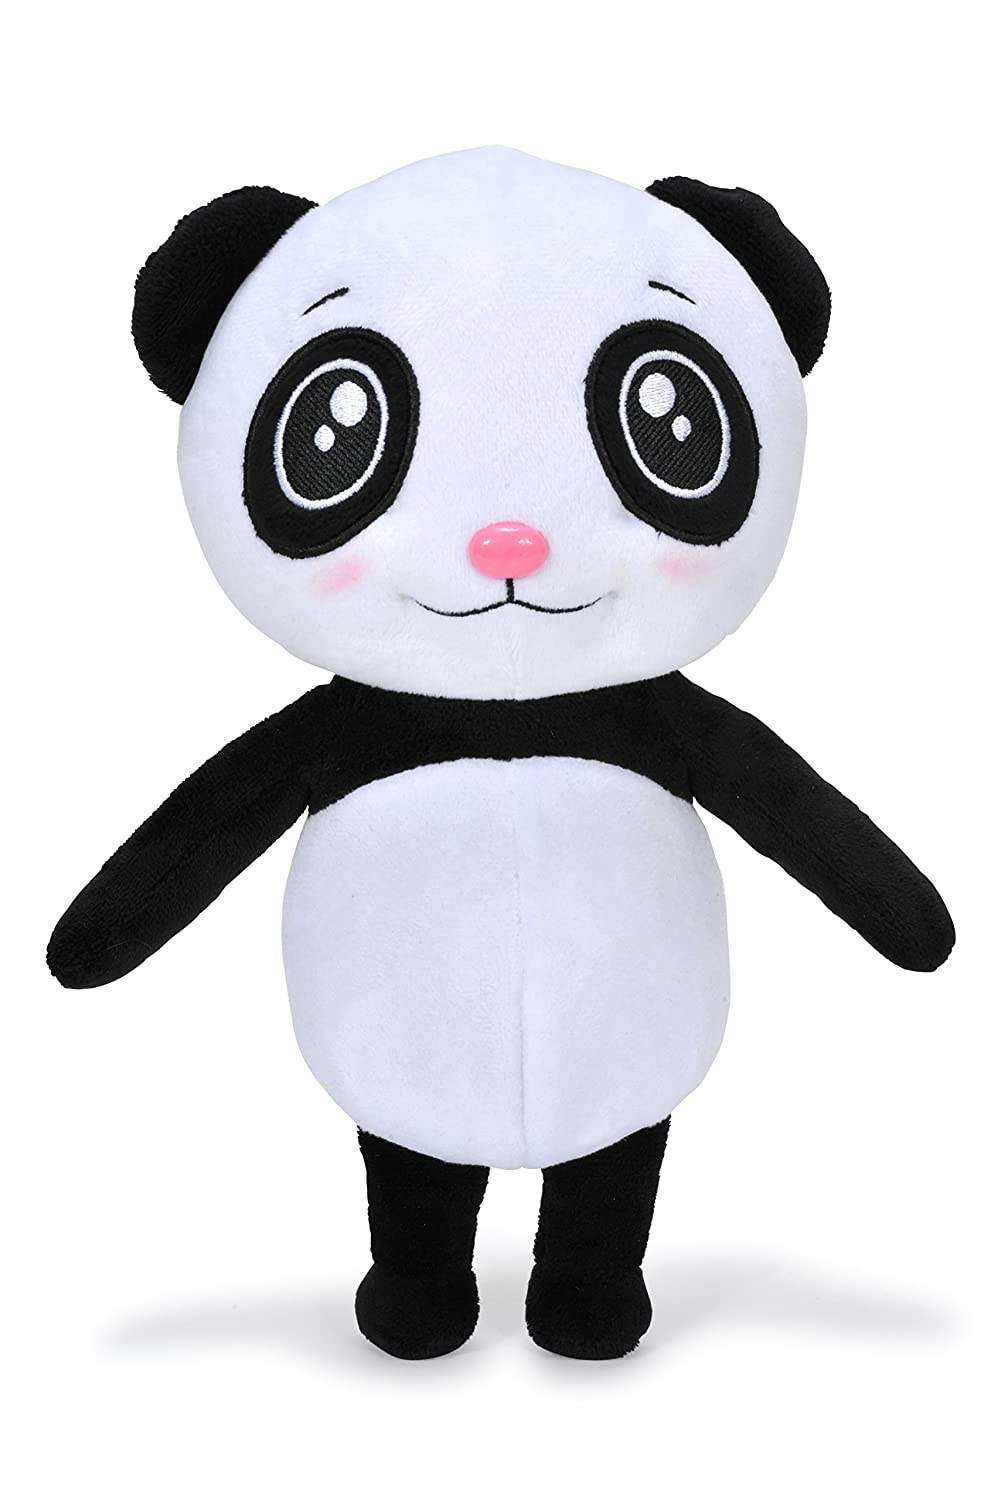 Little Baby Bum Baby Panda Plush Developmental Baby Toys